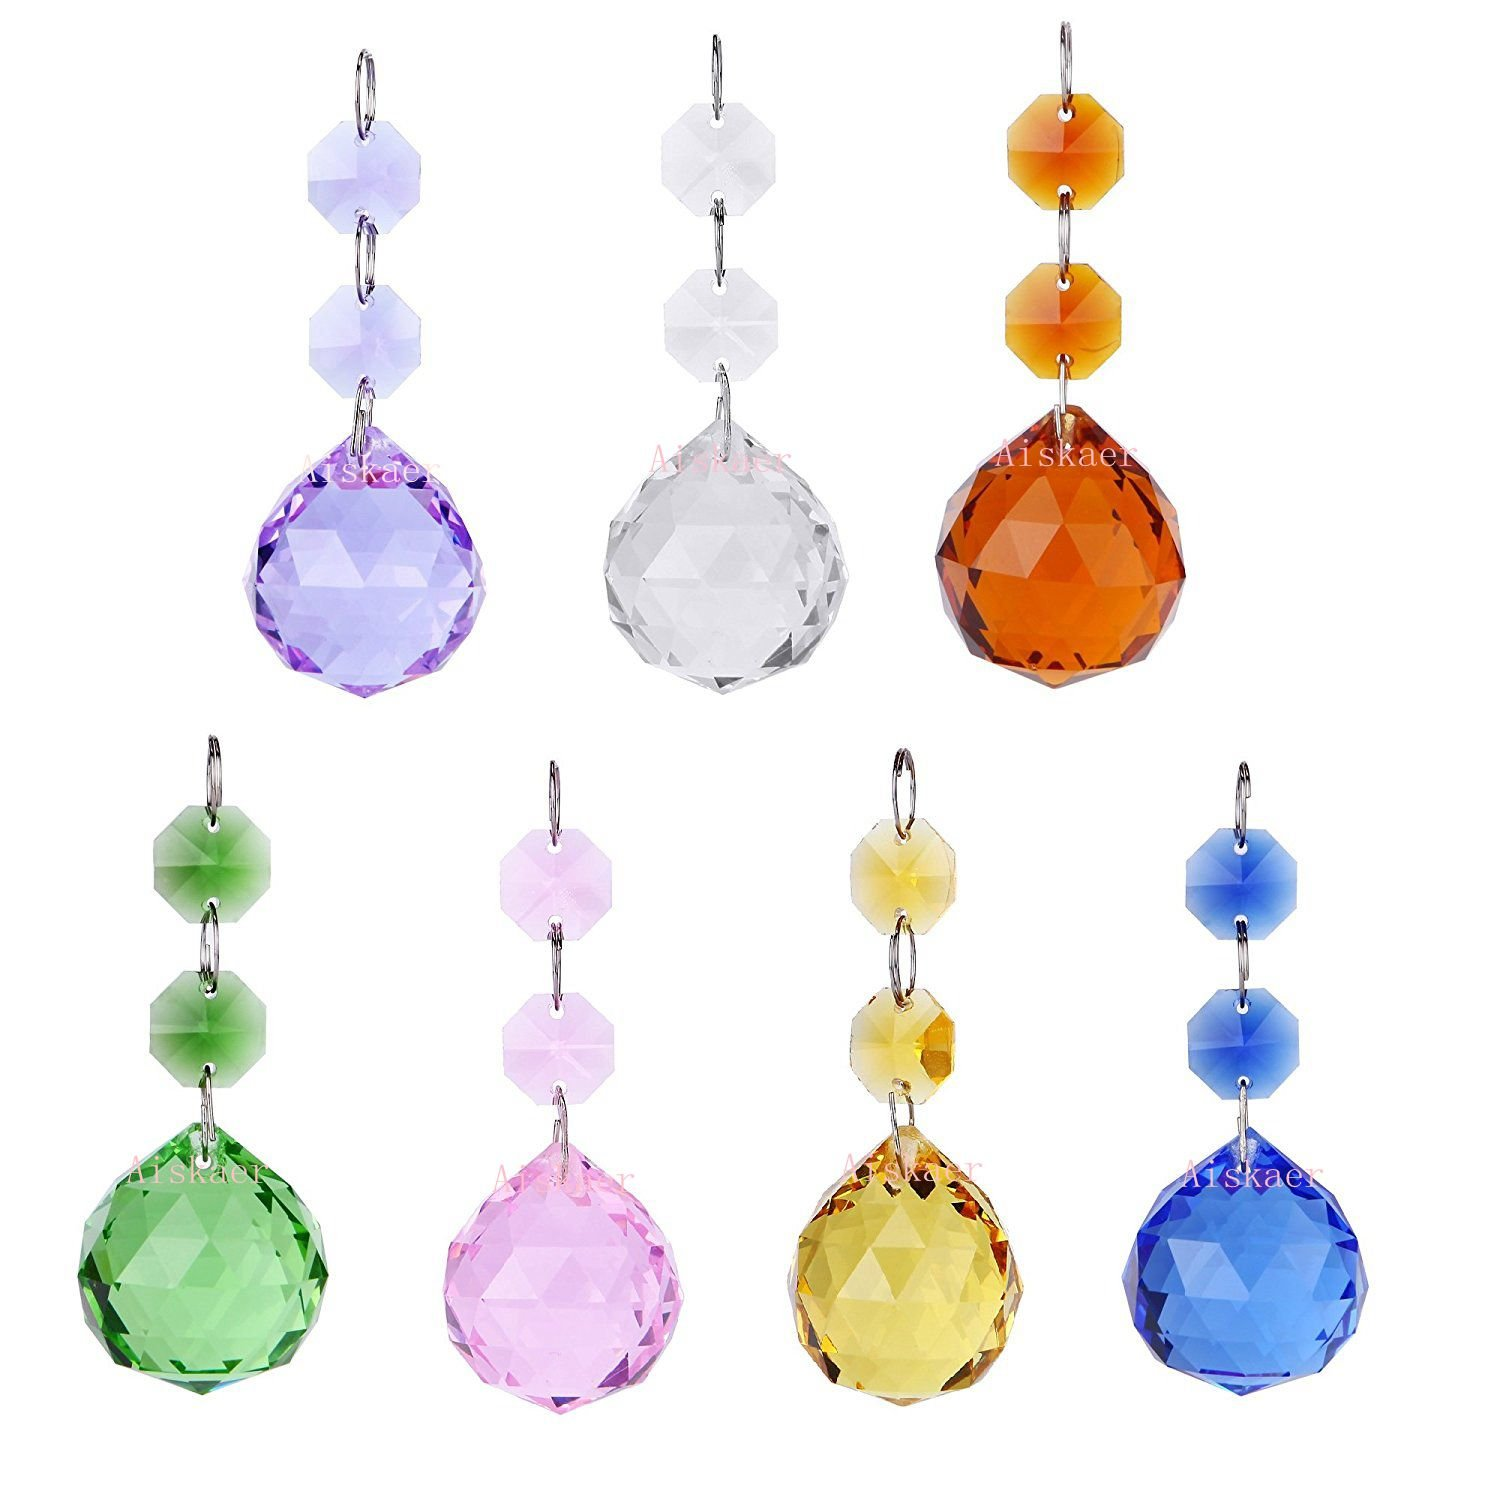 Aiskaer 1.2 Inch 7Pcs Colorful Crystal Ornament Ball Drop Suncatcher Window Prisms,Chandelier Decor Hanging Prism Ornaments,Feng Shui Faceted Ball,golden Yellow,green,blue,purple,pink,dark Brown,clear